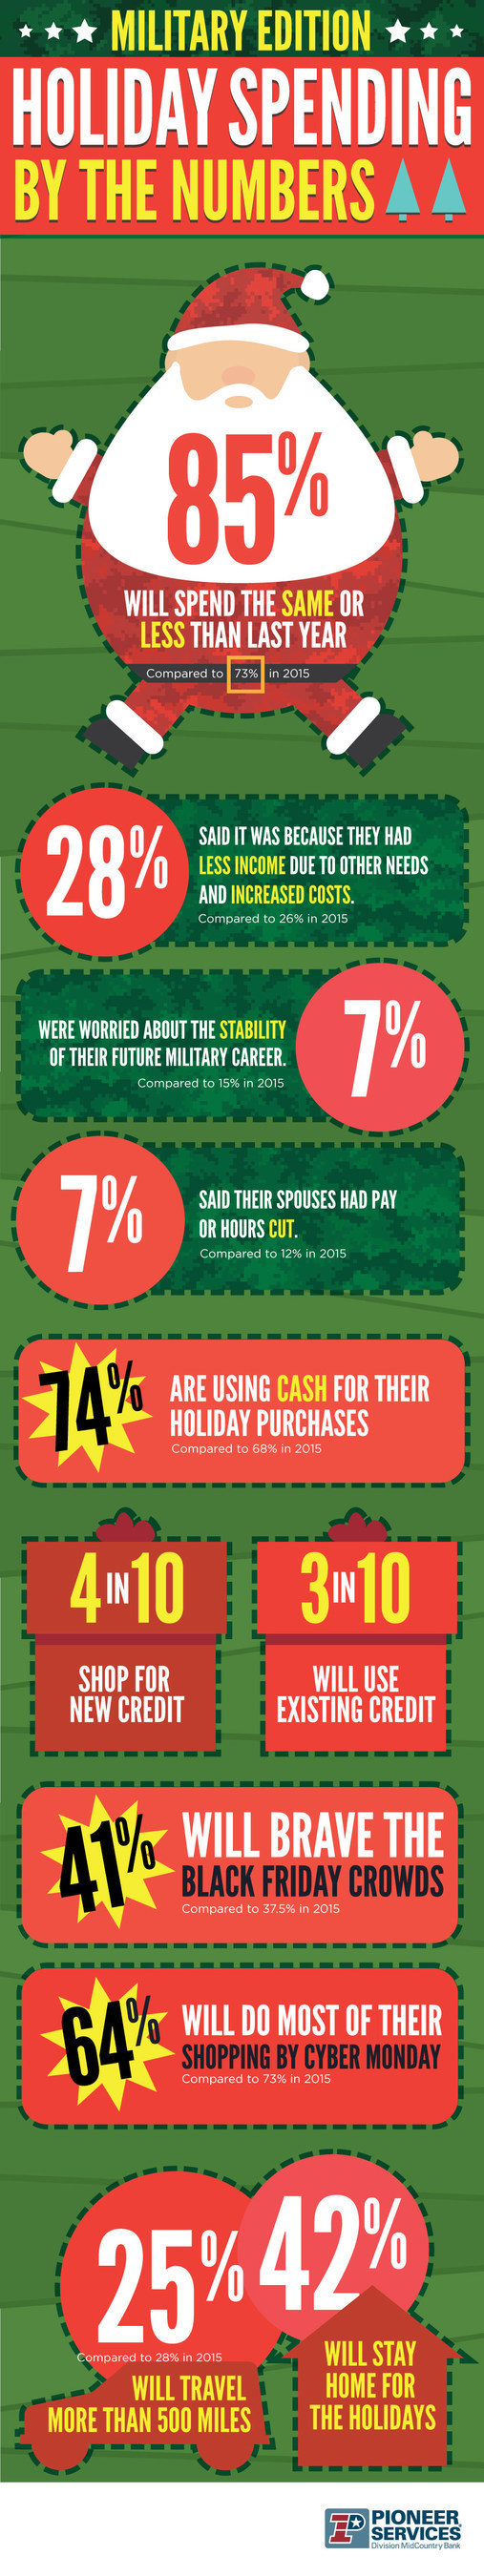 This infographic summarizes findings from the 2016 Military Holiday Spending Survey, conducted online by Pioneer Services from October 19-31, 2016 with responses from 580 military families. The results highlight service member's spending, budgeting, travel, and holiday preferences. For more information, a blog summarizing survey details can be found on the free educational website HolidaySpendingPlanner.org.